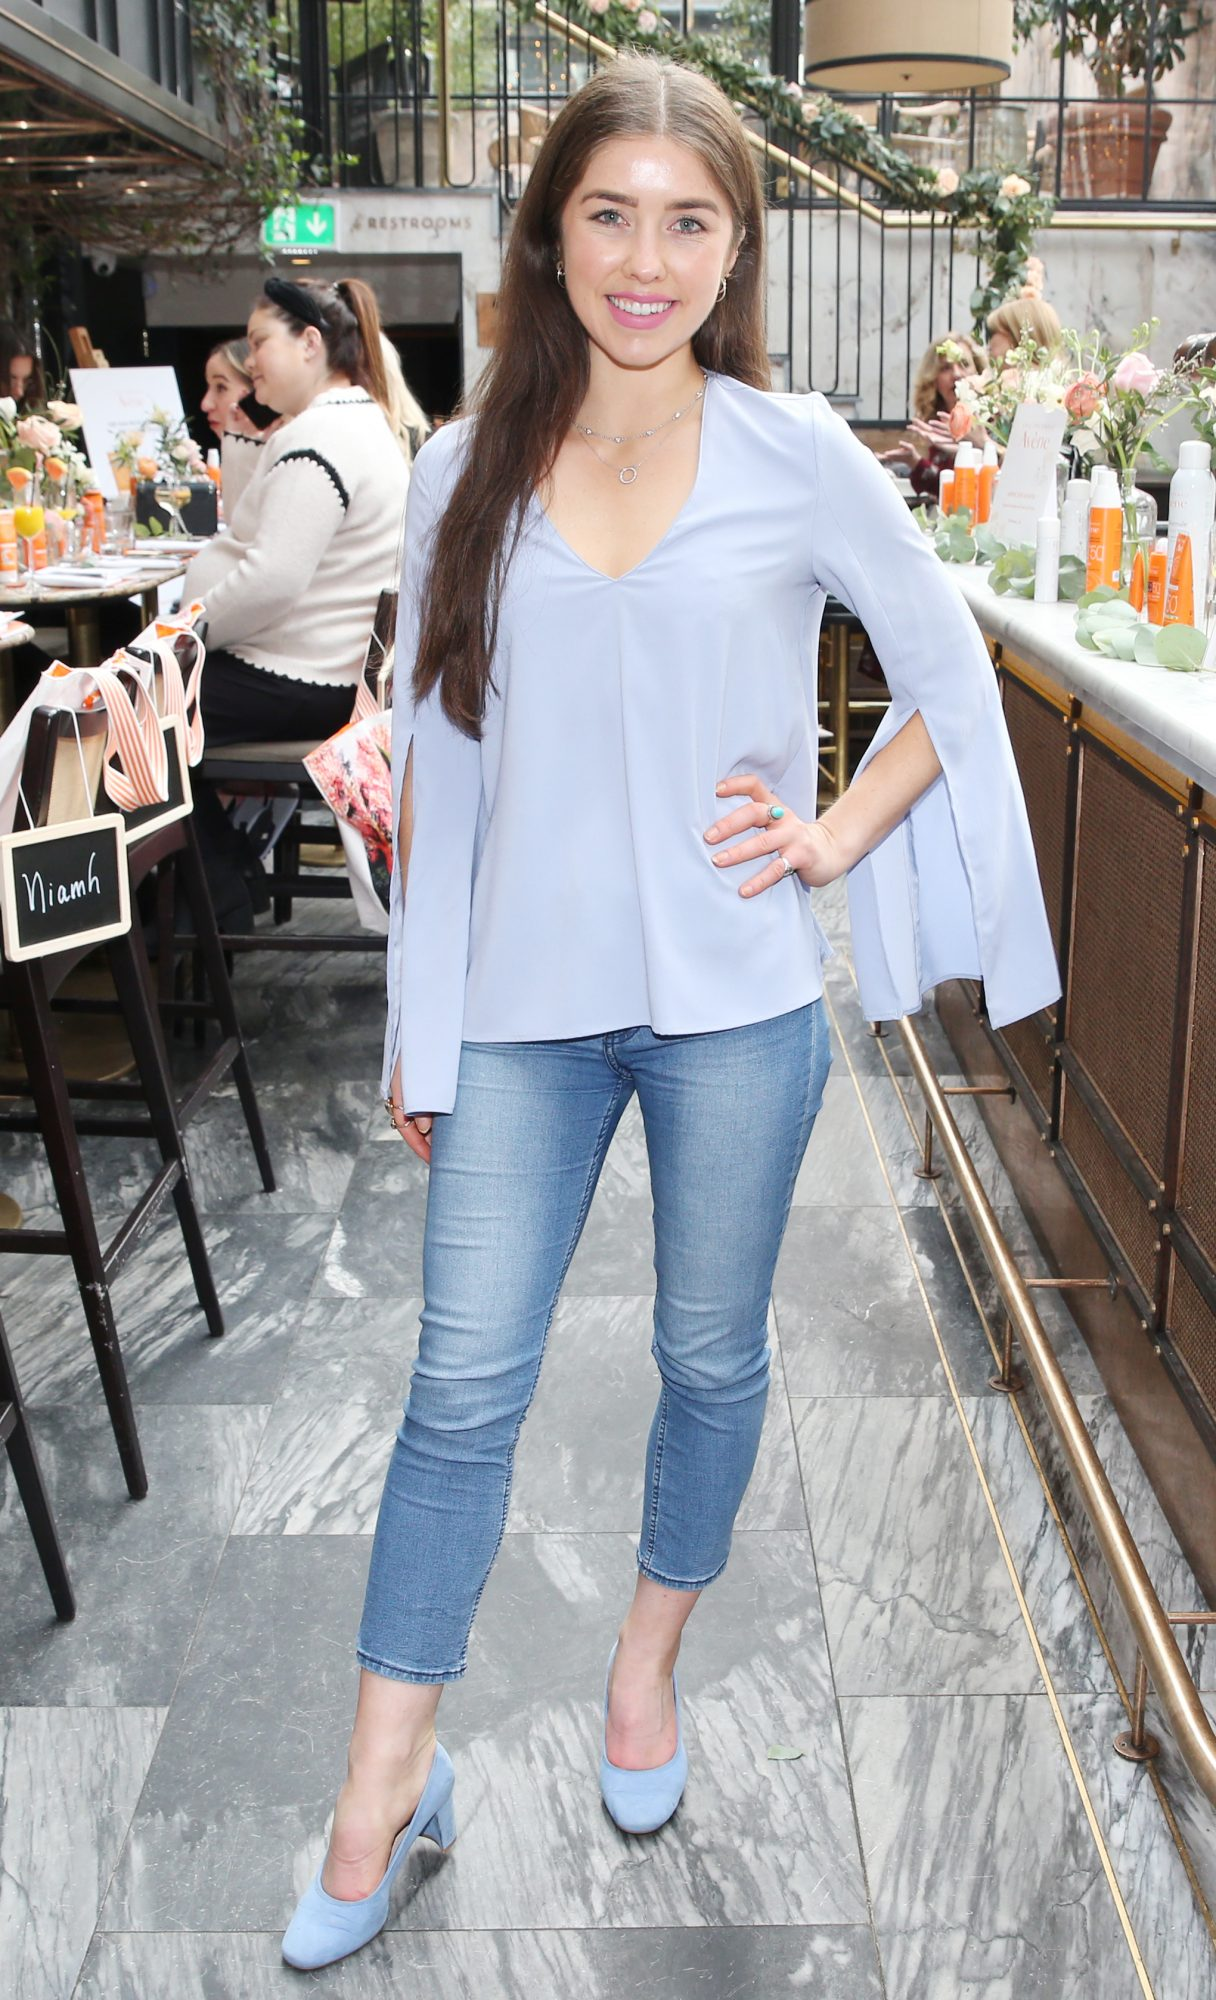 Pictured is Erica Bracken  at the launch of the new Avène Expert Suncare Range in The Grayson Dublin. The new range of suncare from the French brand is suitable for all skin types and includes a Sports Sun Cream, a City Shield BB Style High Protection Face Cream, two new SPF Body Sprays and a new Very High Protection Children's SPF. For more information visit www.avene.ie. Photo: Leon Farrell/Photocall Ireland.